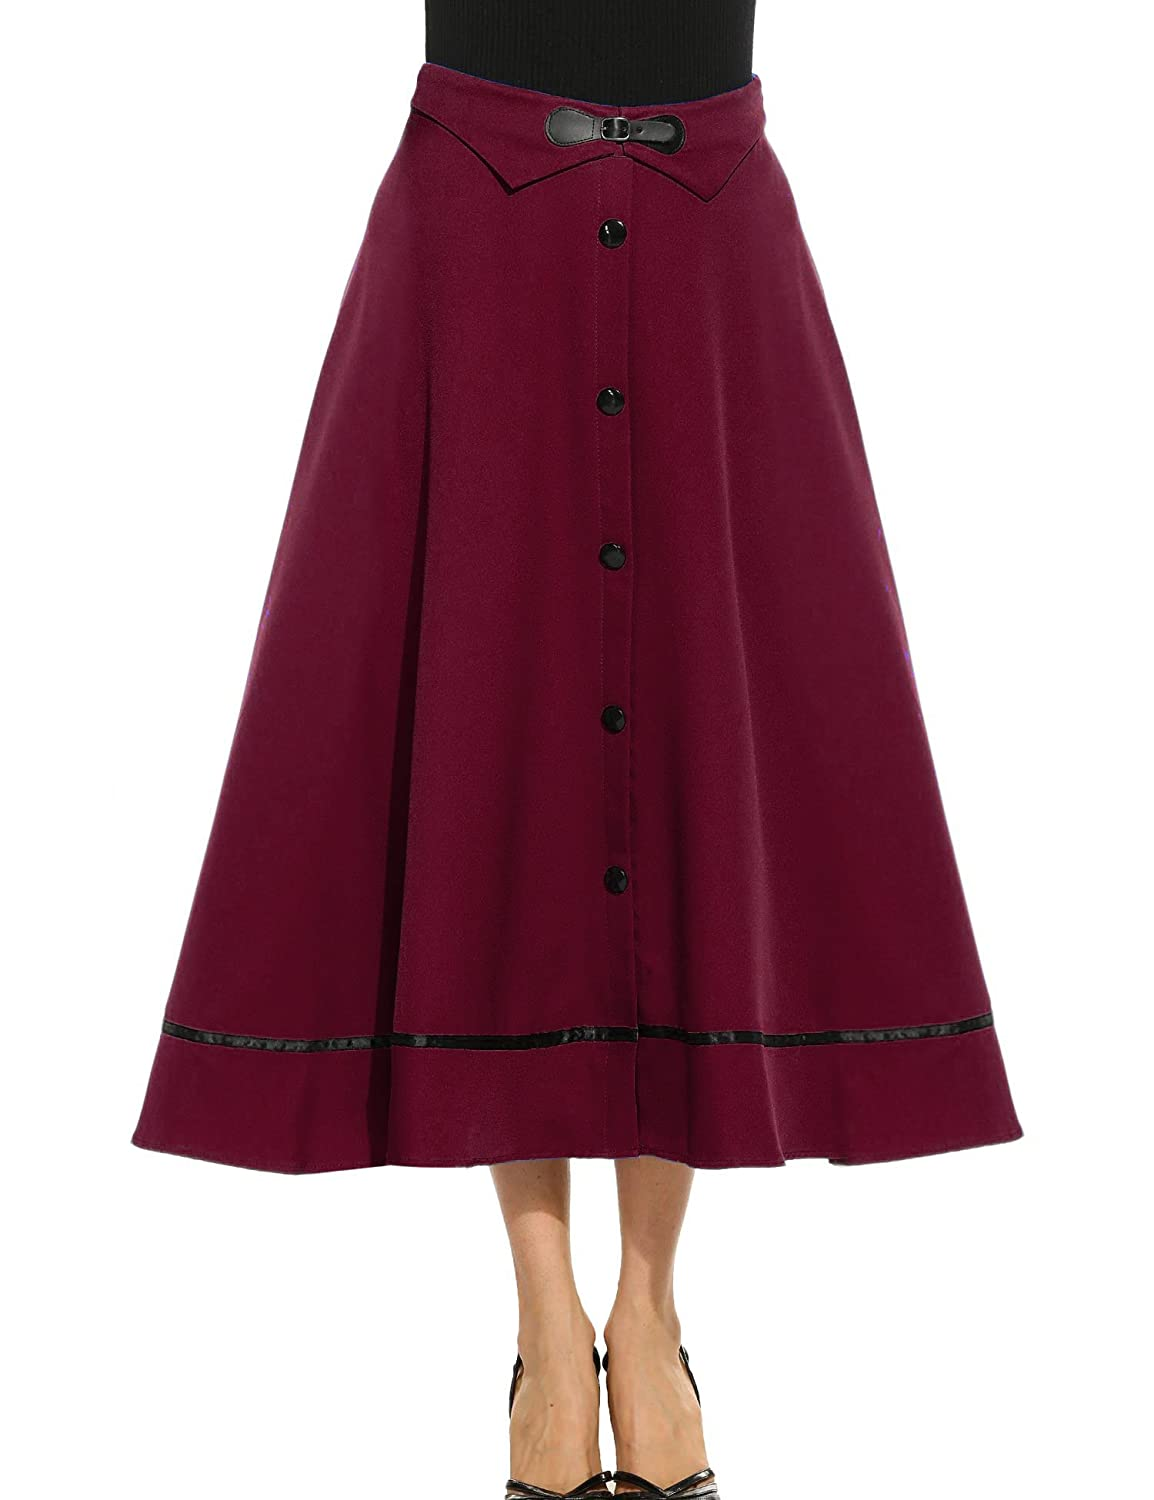 1940s Style Skirts- Vintage High Waisted Skirts ANGVNS Womens Vintage High Waist Button Down Pleated Swing Skirt $18.99 AT vintagedancer.com